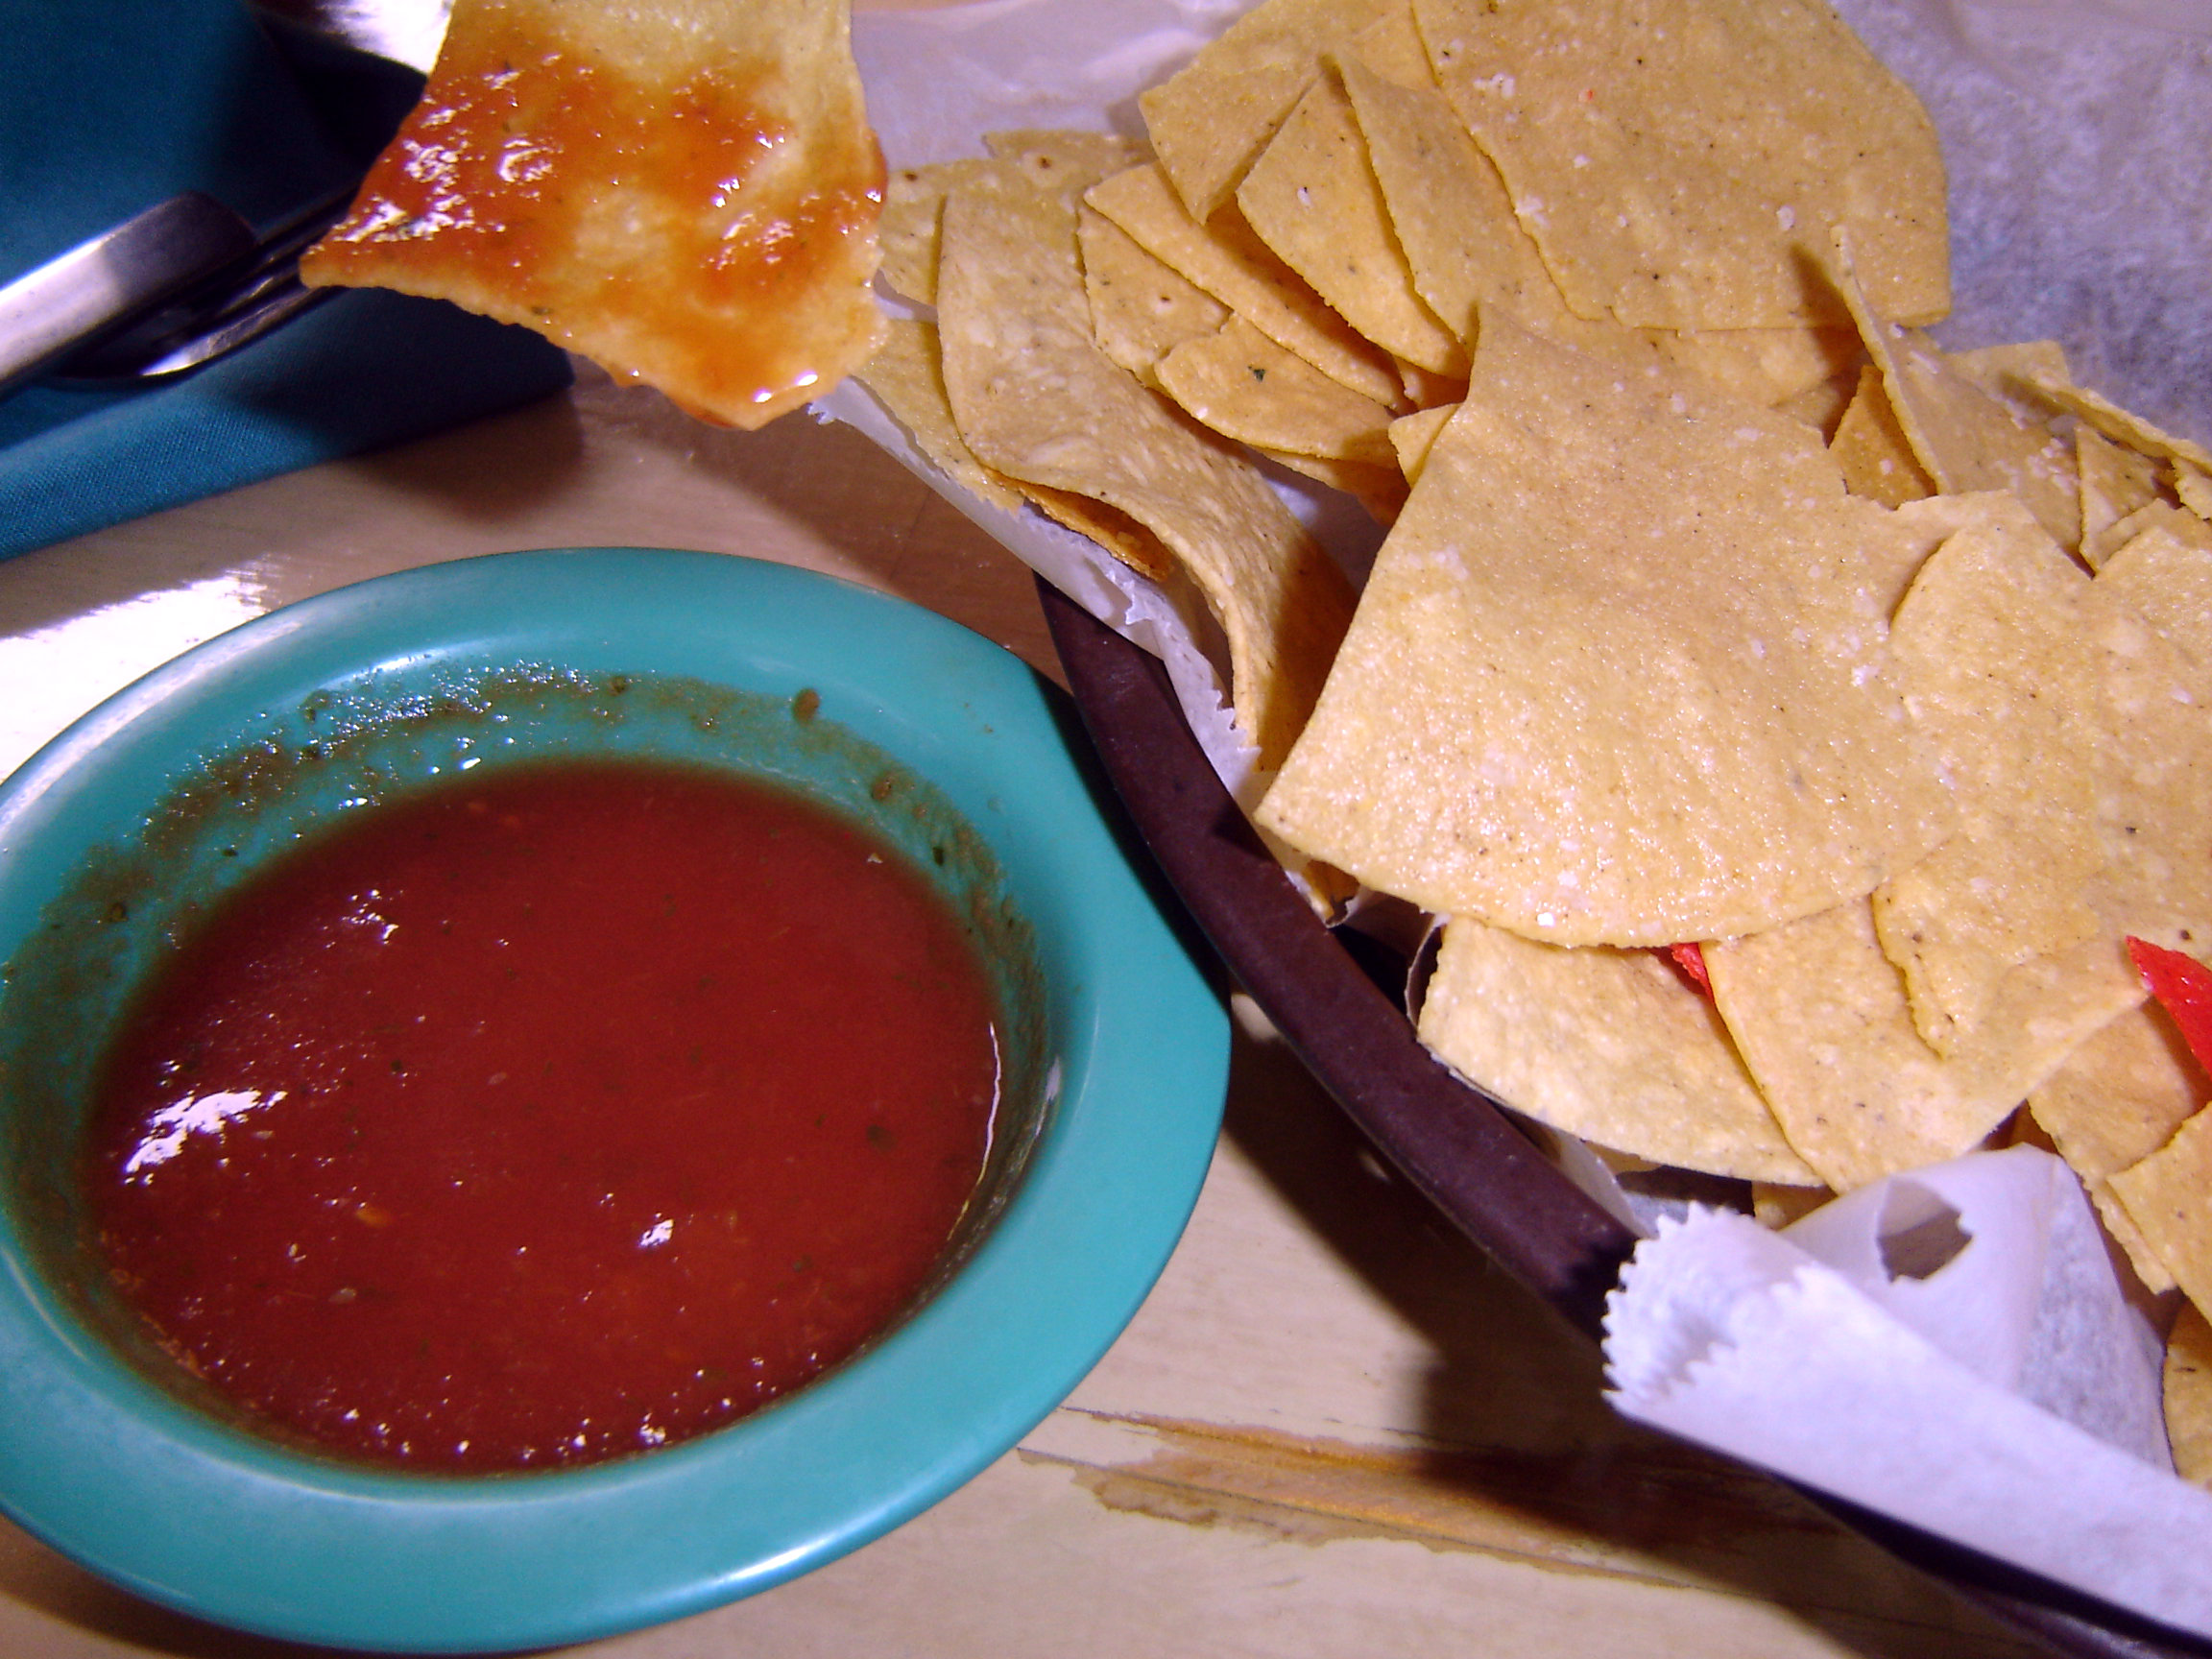 Across the Street, Chips and Salsa, Mexican Food